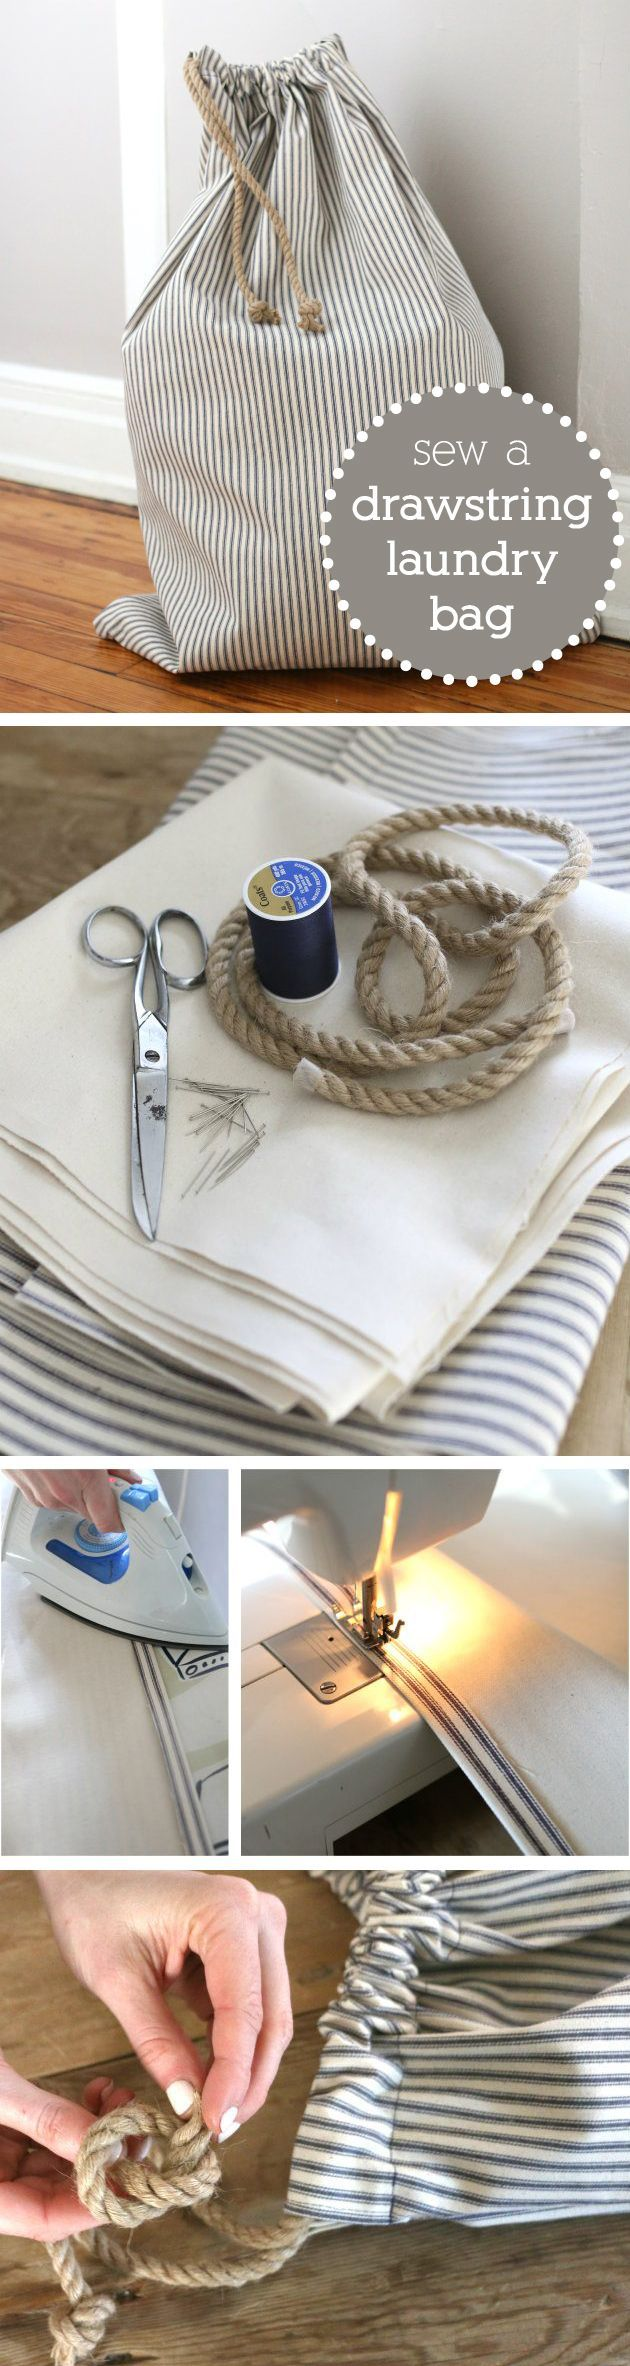 Just because it's for laundry   .... ♥♥ .... doesn't mean it can't be cute and stylish! DIY a drawstring laundry bag that is functional, portable (good for travel) and perfect for small spaces like dorm rooms. http://www.ehow.com/how_2173785_sew-drawstring-laundry-bag.html?utm_source=pinterest.com&utm_medium=referral&utm_content=inline&utm_campaign=fanpage&crlt.pid=camp.z65W658ZKxH1&crlt.pid=camp.IJ29XvS9r1g7